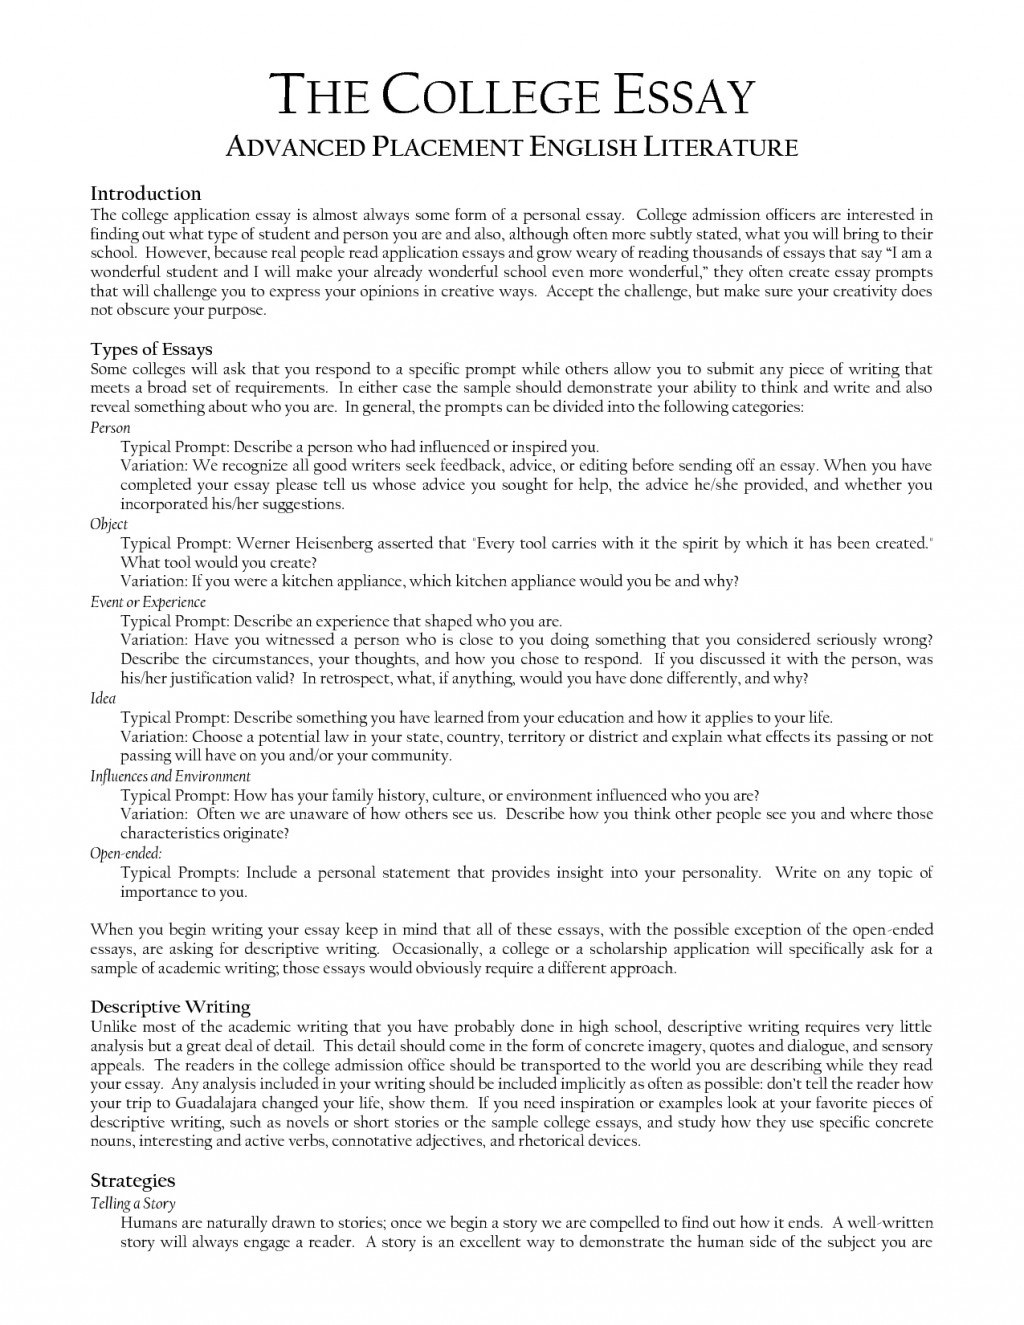 011 Essay Example John Hopkins Essays That Worked Good College Examples Writings And About Sports Format Asli Aetherair Apply Texas Stanford Reddit Johns Topic Singular 2021 2018 2020 Large